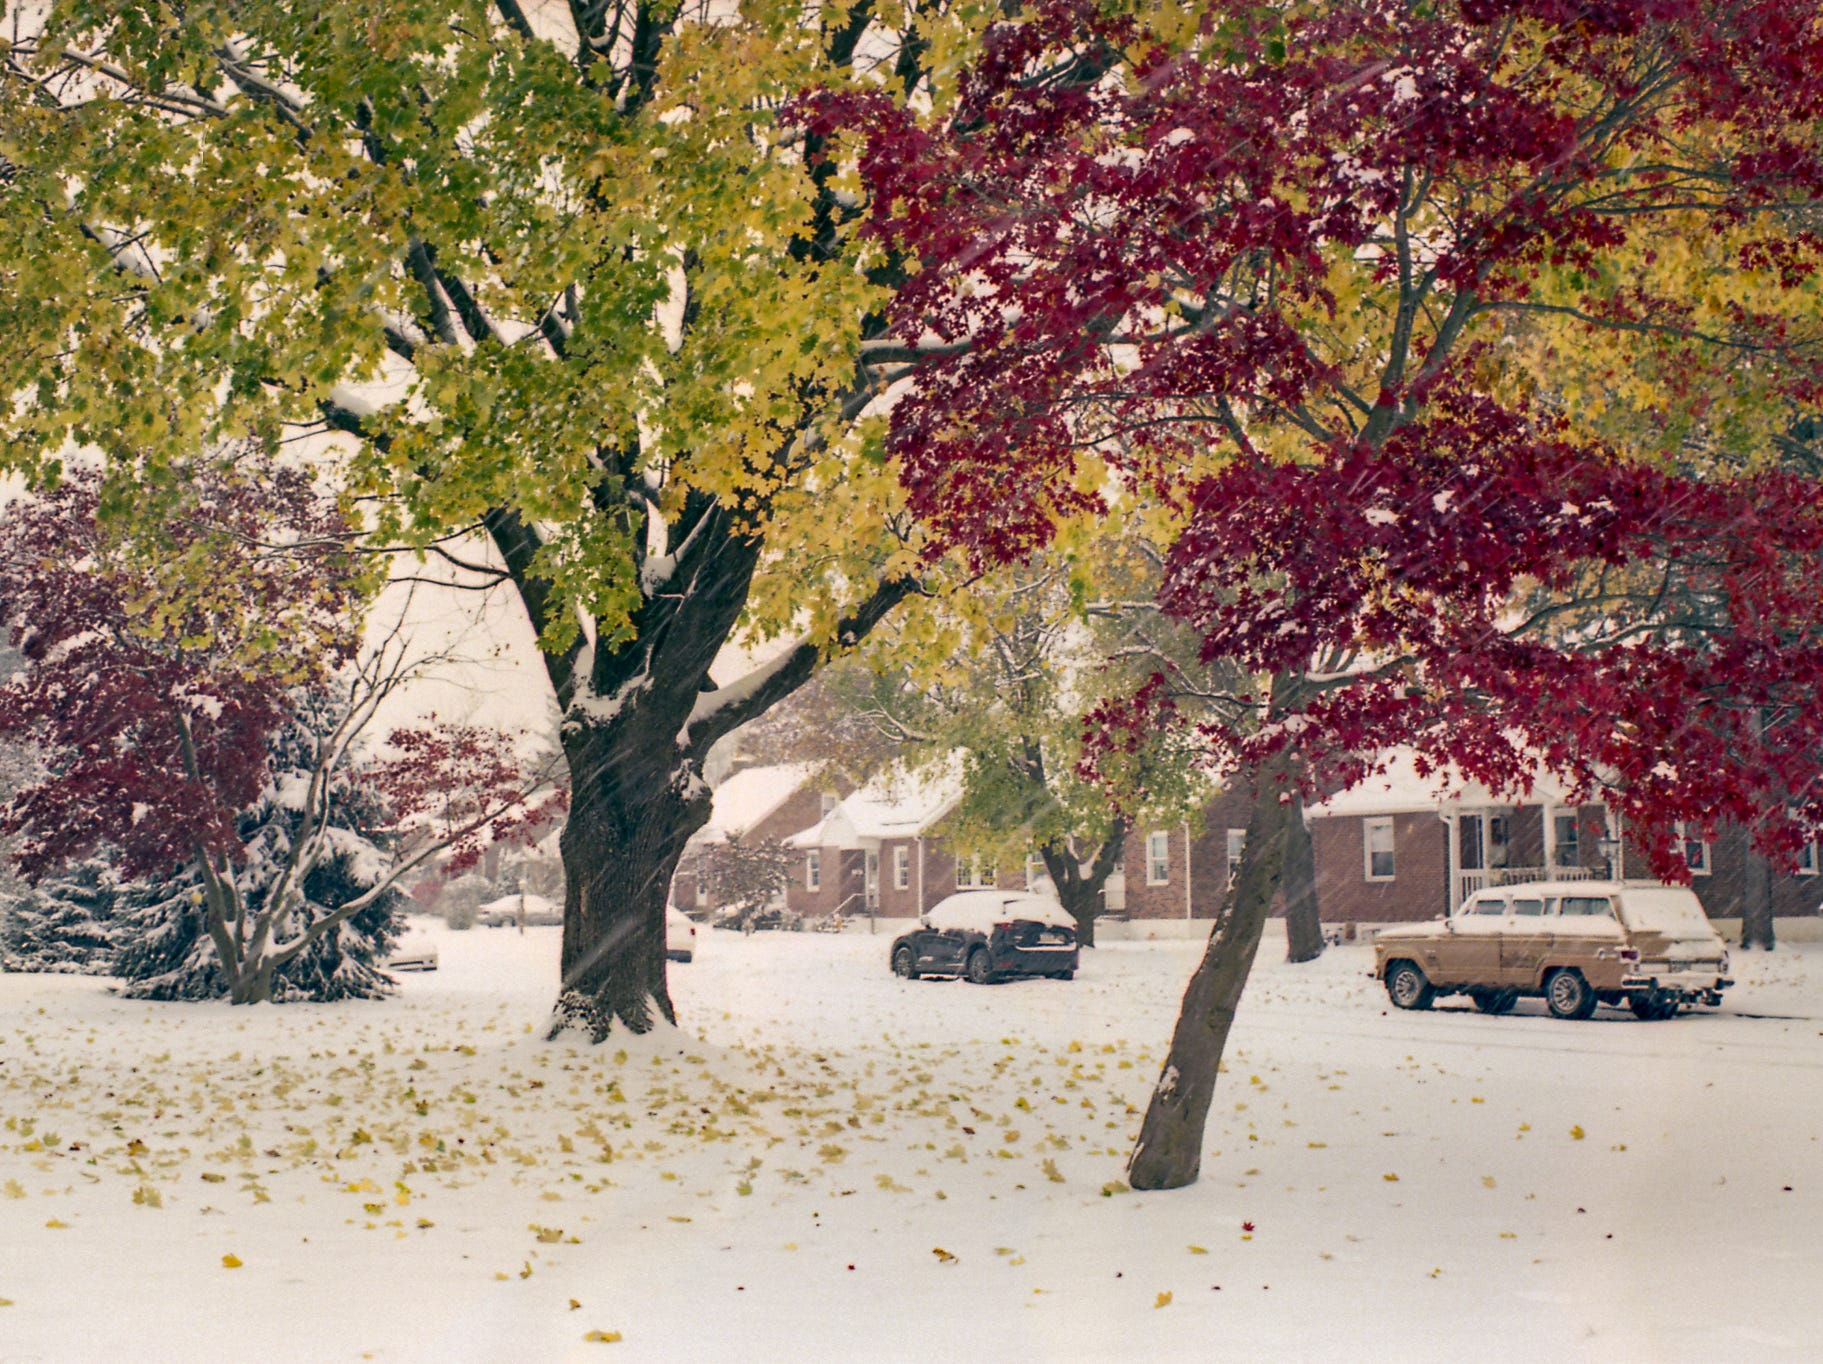 Nate Gentzler eventually hopes to print photos at his own home as well, but for now he will continue to shoot as much as he can whenever he can.  This is a photo embodying the clash of the seasons. [Pentax K] [Kodak Ektar 100]